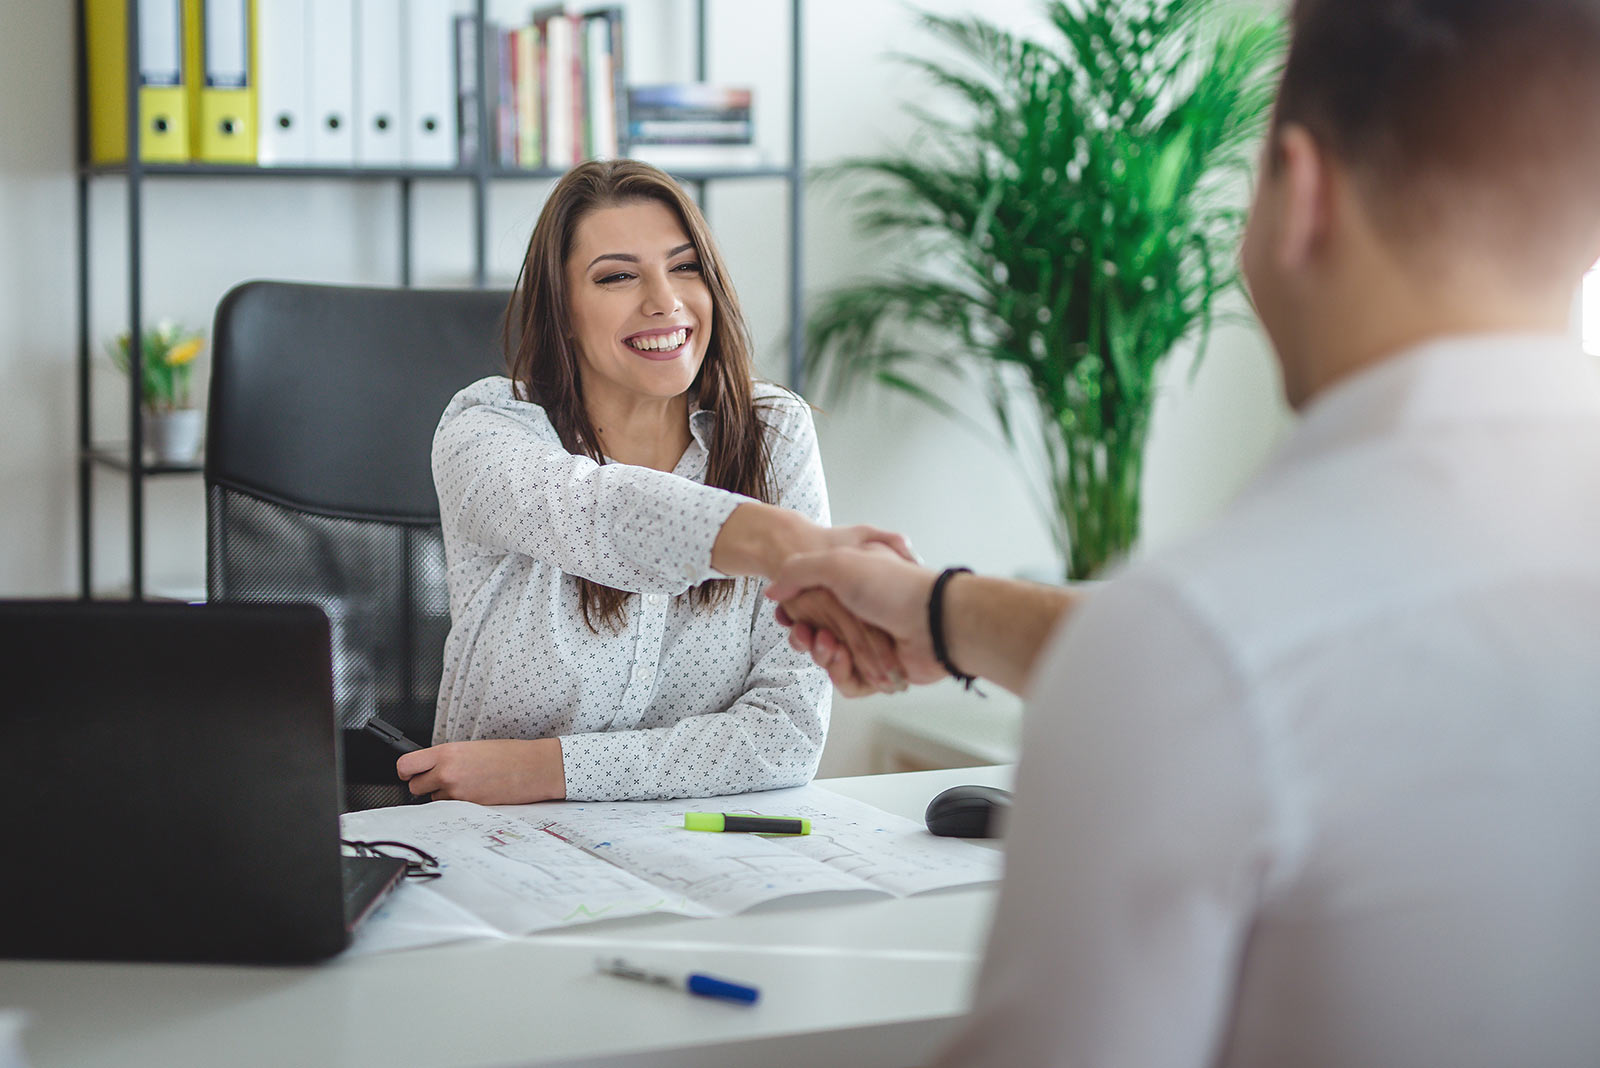 Human resources manager shaking hands with new employee